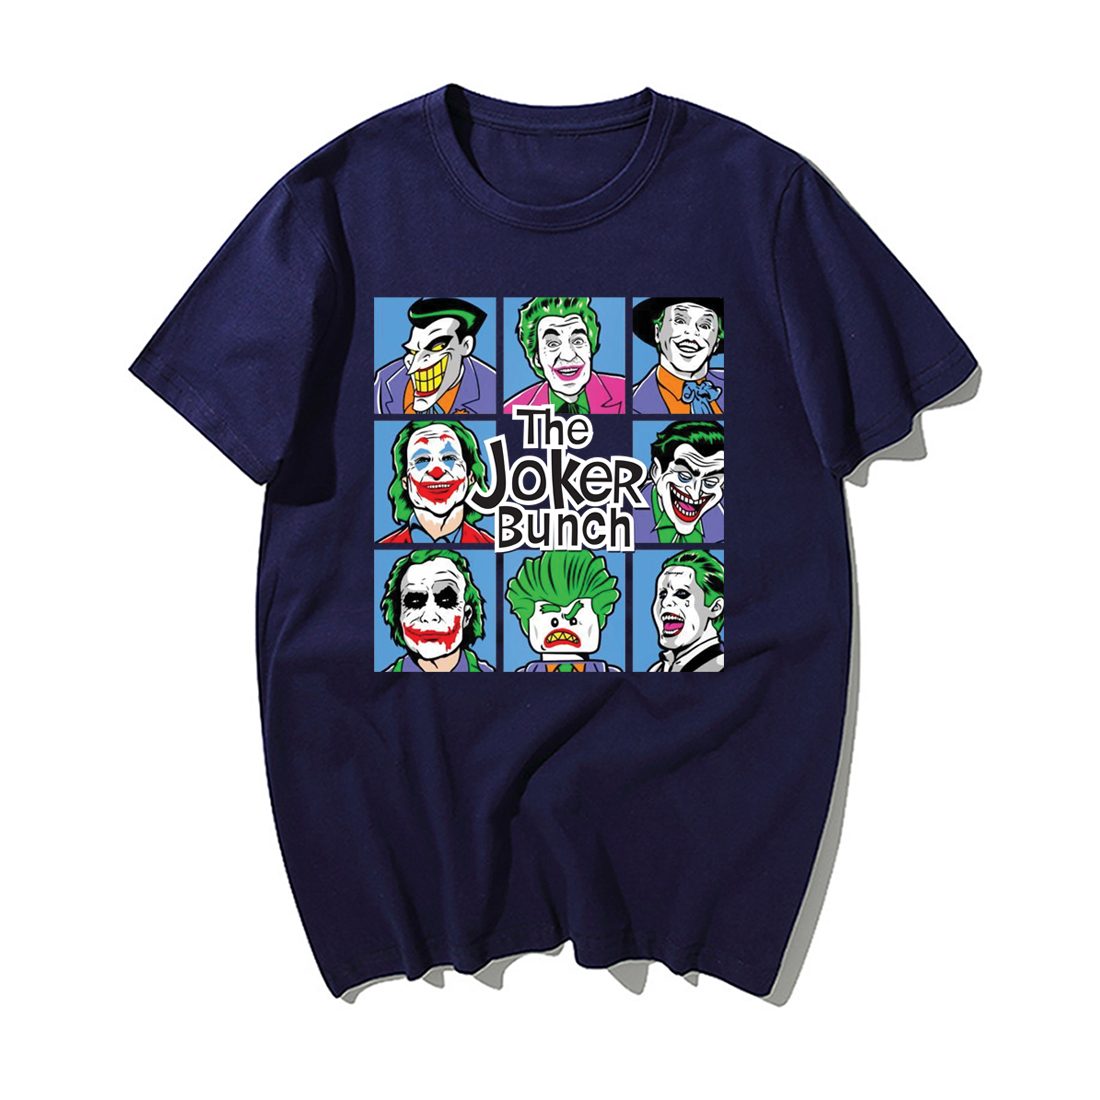 Funny Jokers T Shirt Men Fashion The Joker Bunch Print Tshirt Summer Hip Hop Tops Streetwear Casual Cotton Short Sleeve Tshirts